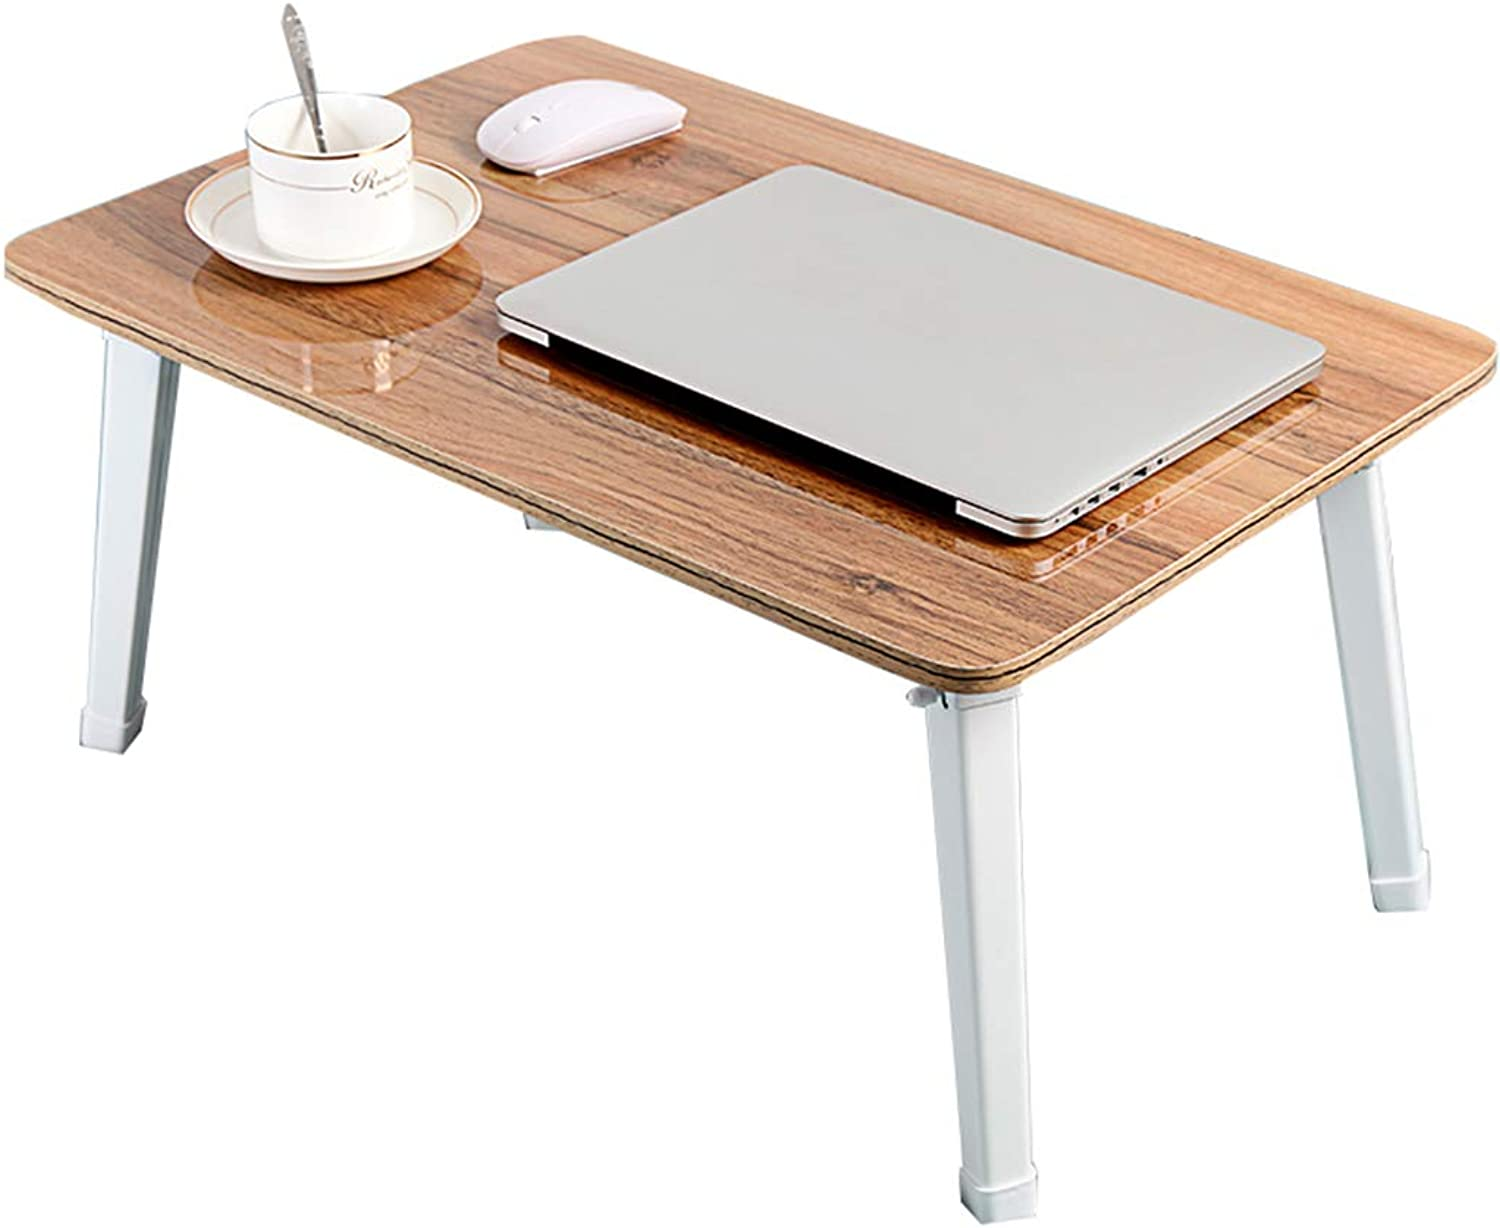 C-J-Xin Folding Table, Bedroom Bed Small Table Living Room Balcony Coffee Table Office Study Table Dining Table Laptop Table Household table (color   A)